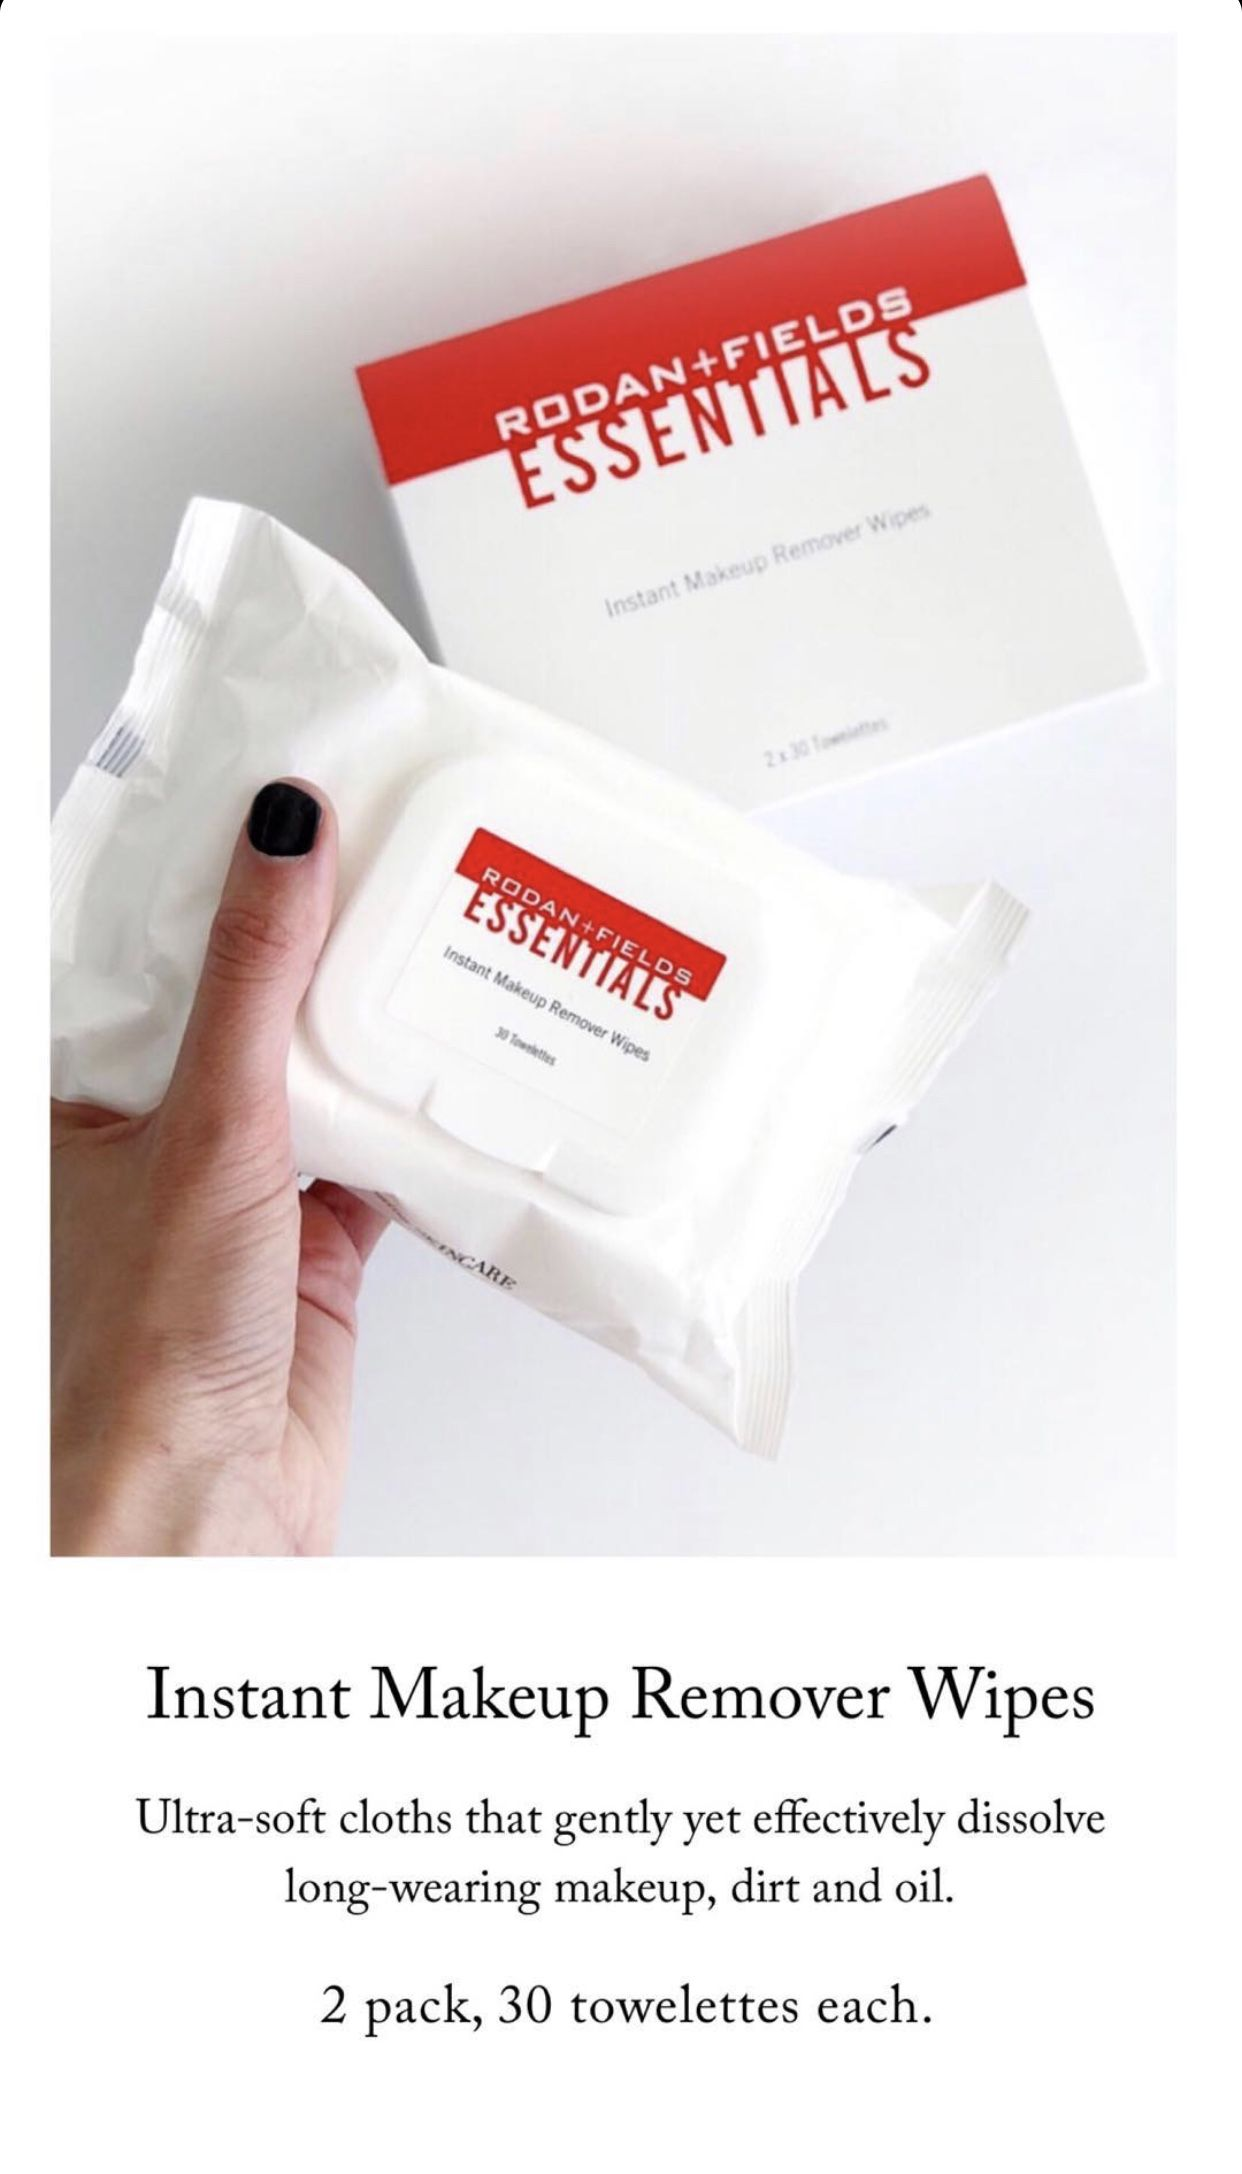 Pin by Kylye Turner on R+F in 2020 Makeup remover wipes